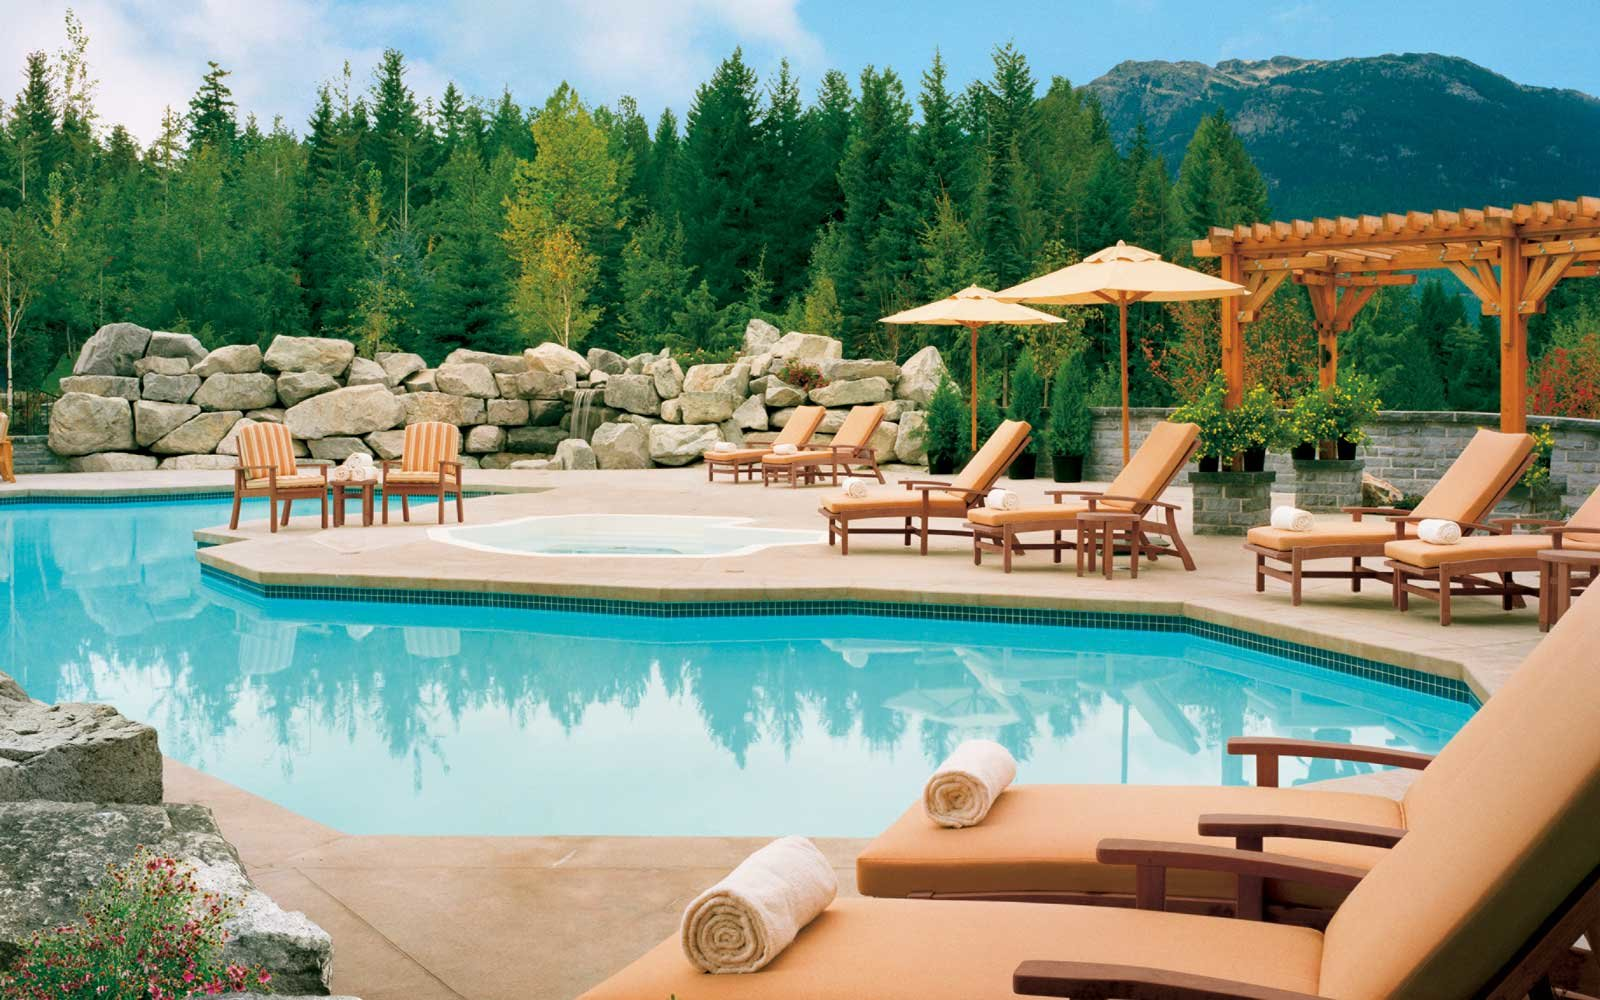 10. Four Seasons Resort & Residences, Whistler, British Columbia